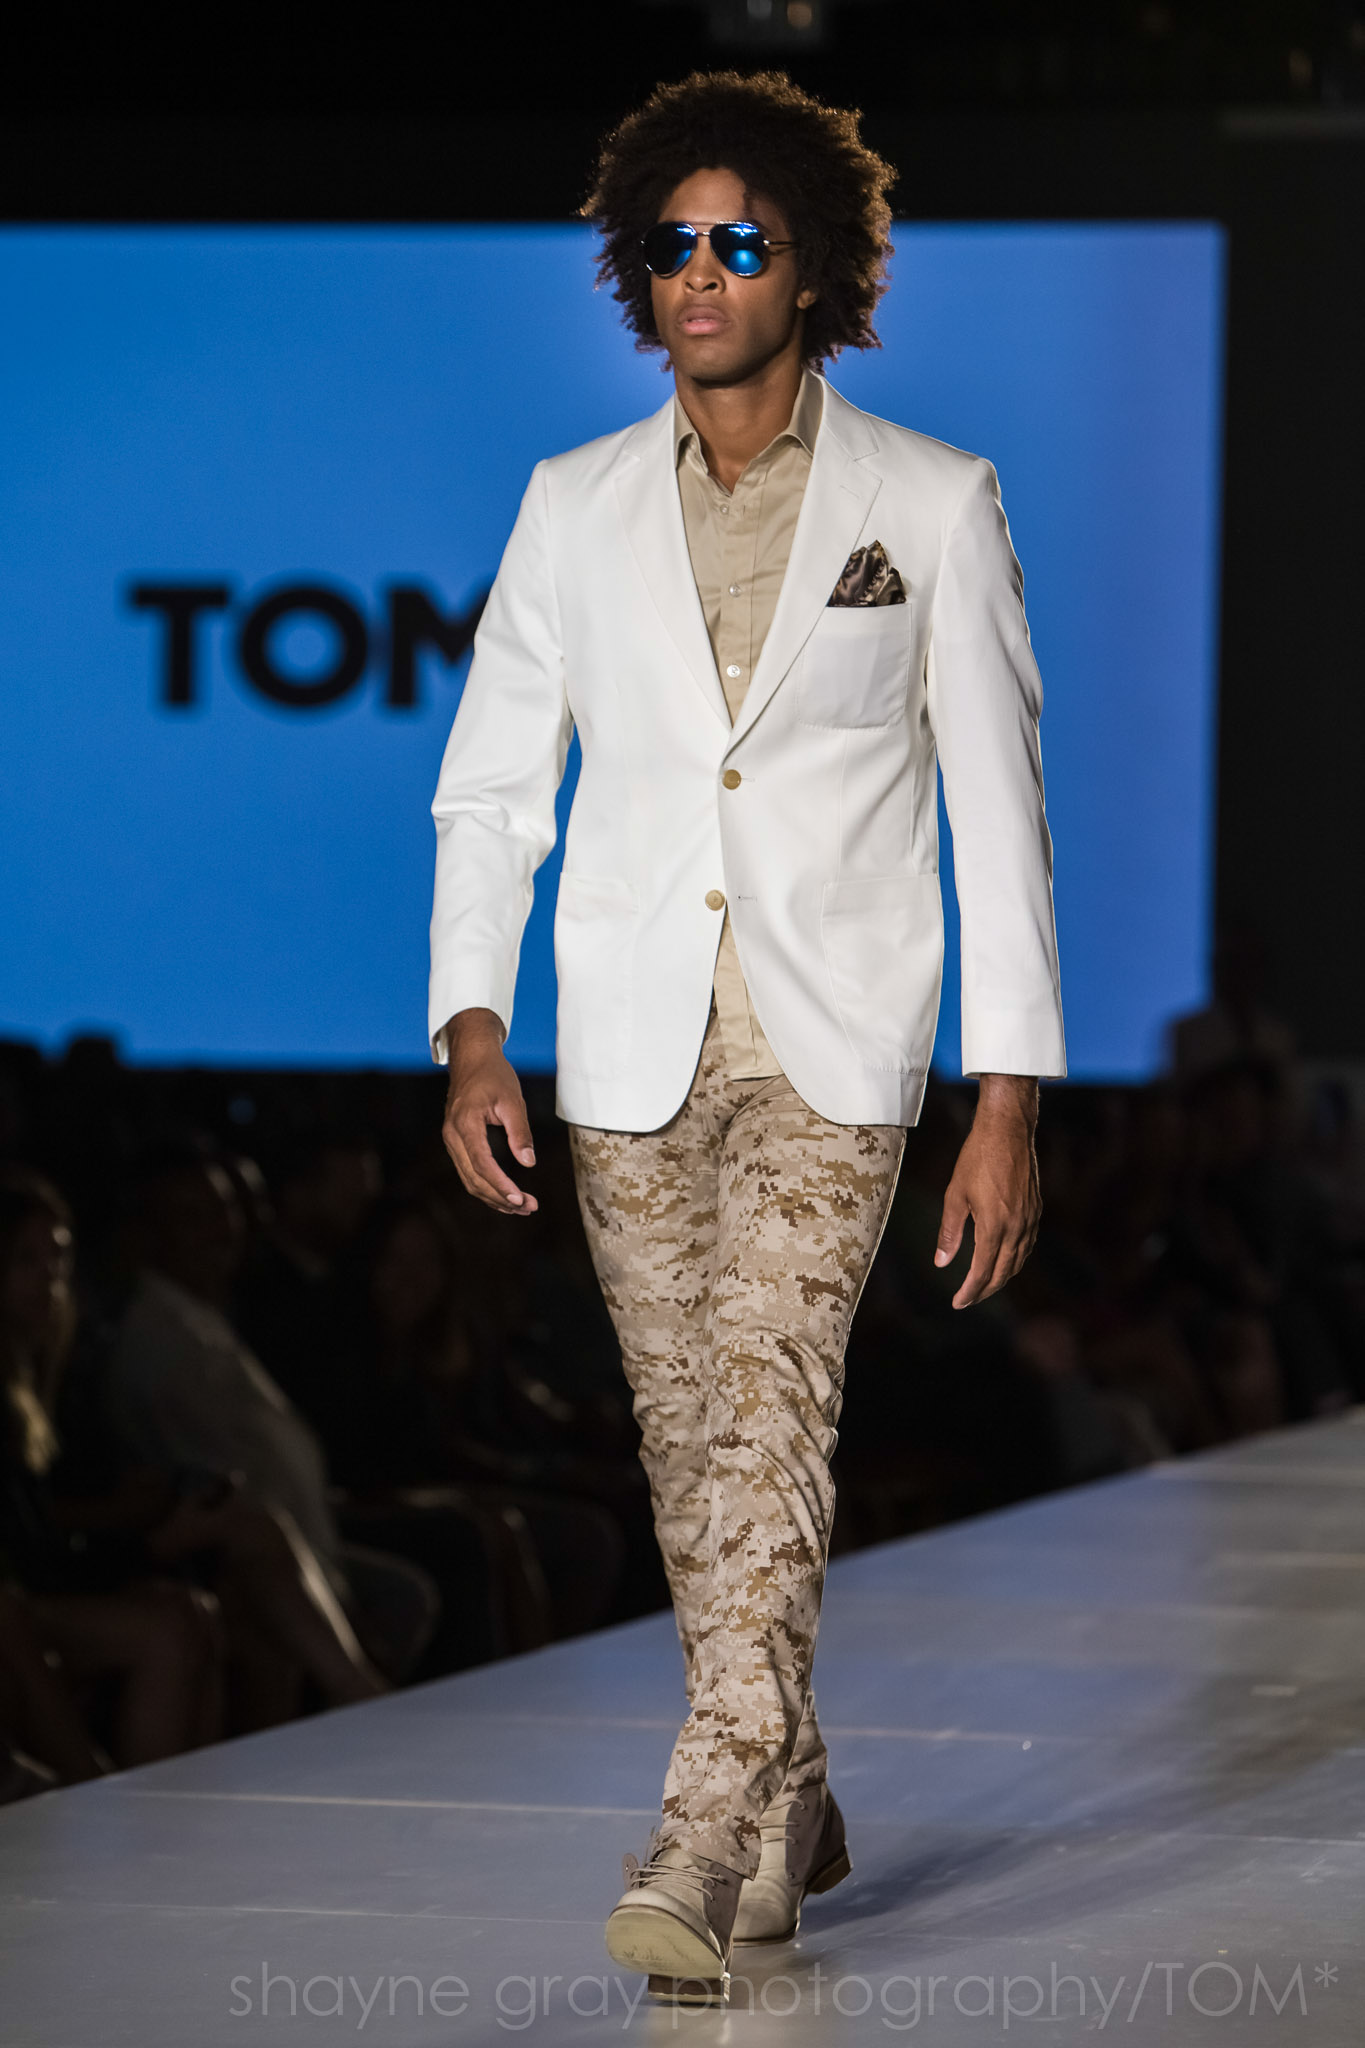 Shayne-Gray-Toronto-men's-fashion_week-TOM-christopher-bates-7374.jpg